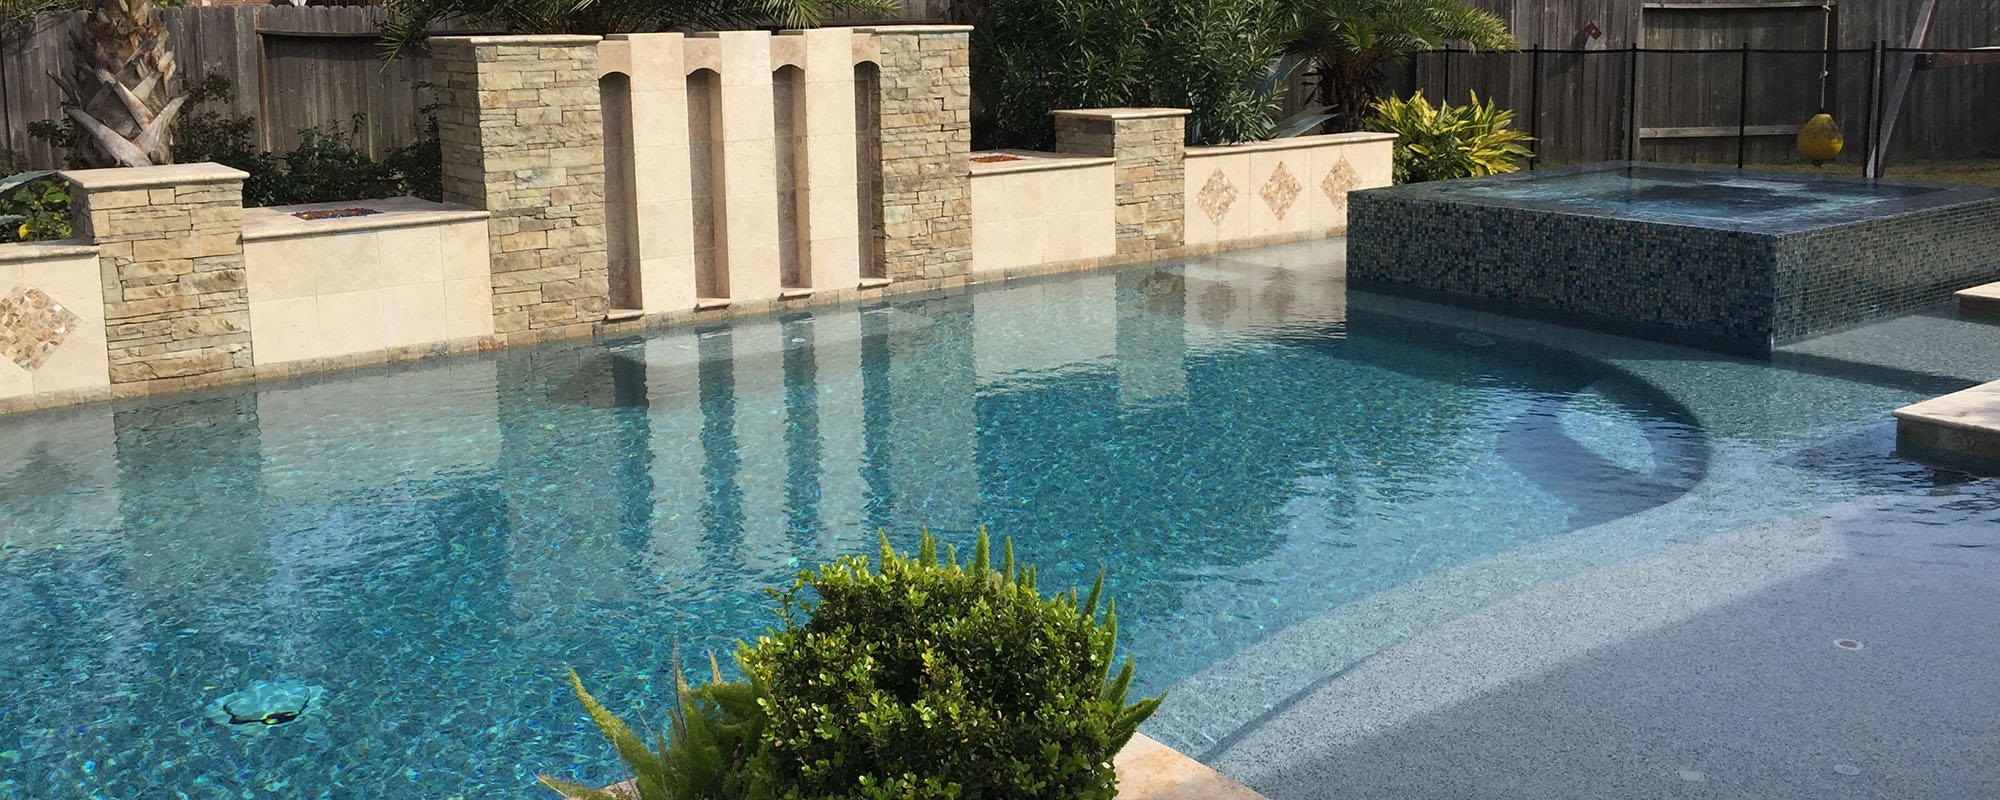 Custom pools outdoor designs dc pools katy texas for Pool design katy